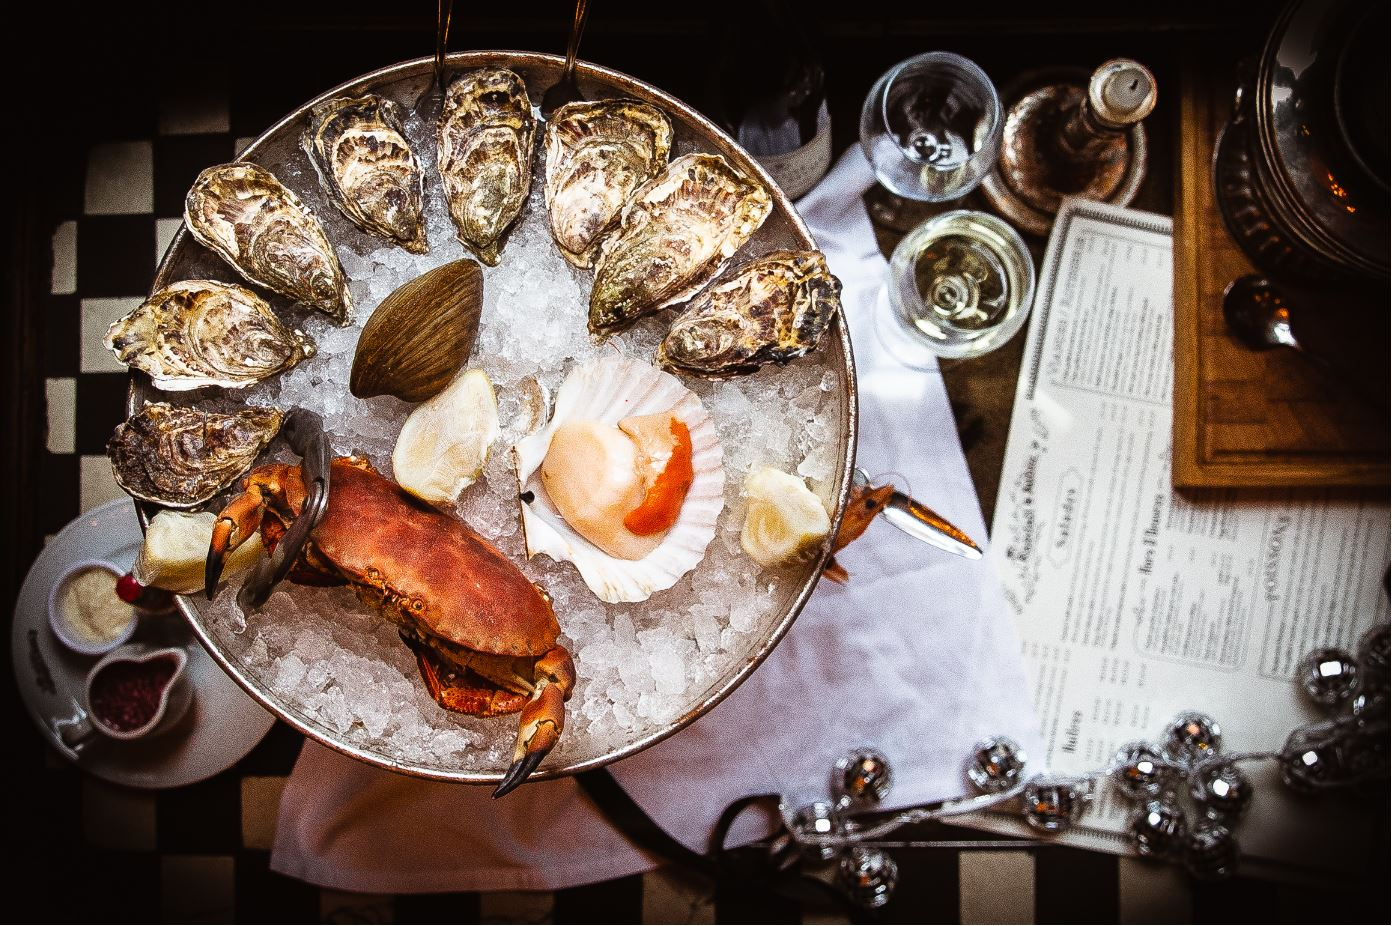 Oysters & Seafood Platter